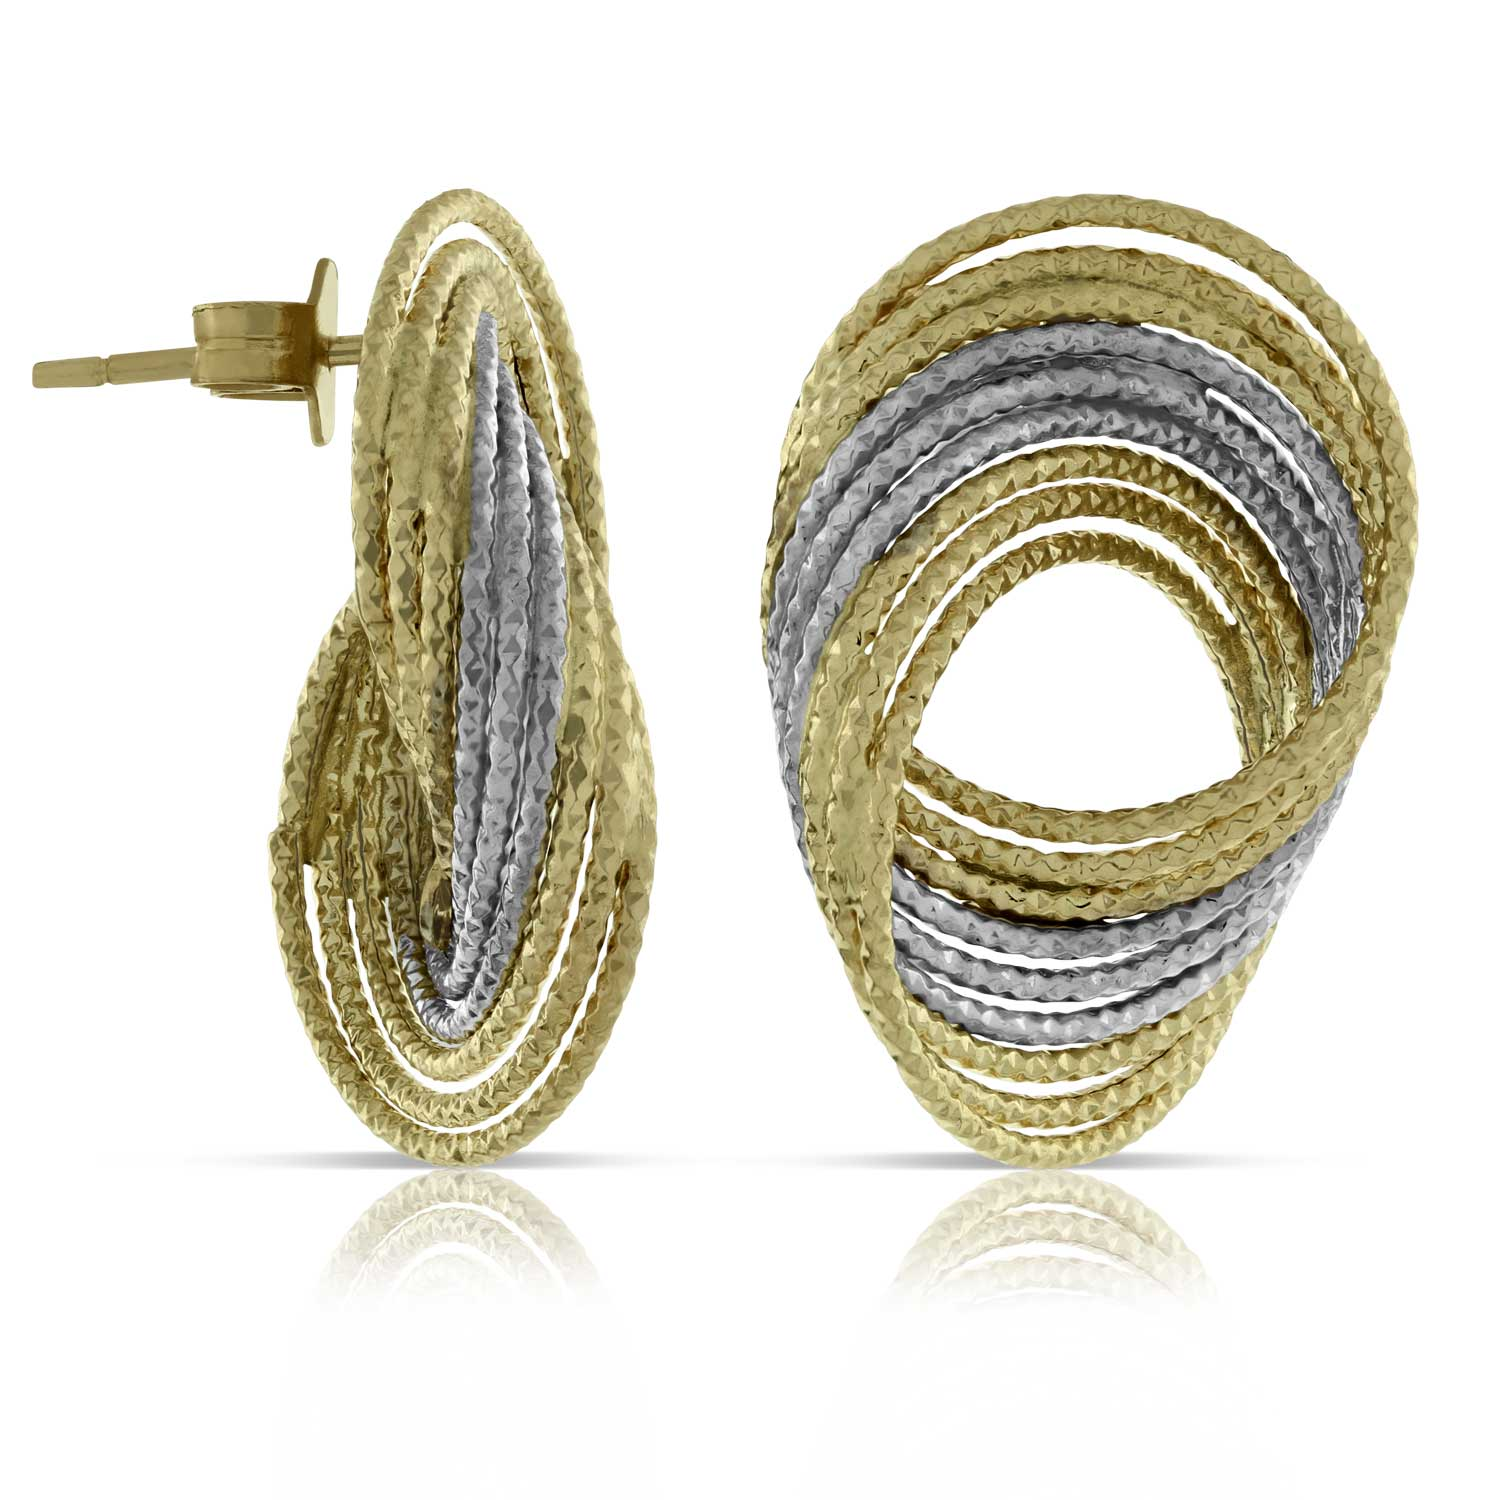 Toscano Twisted Wire Two-Tone Earrings 14K | Ben Bridge Jeweler